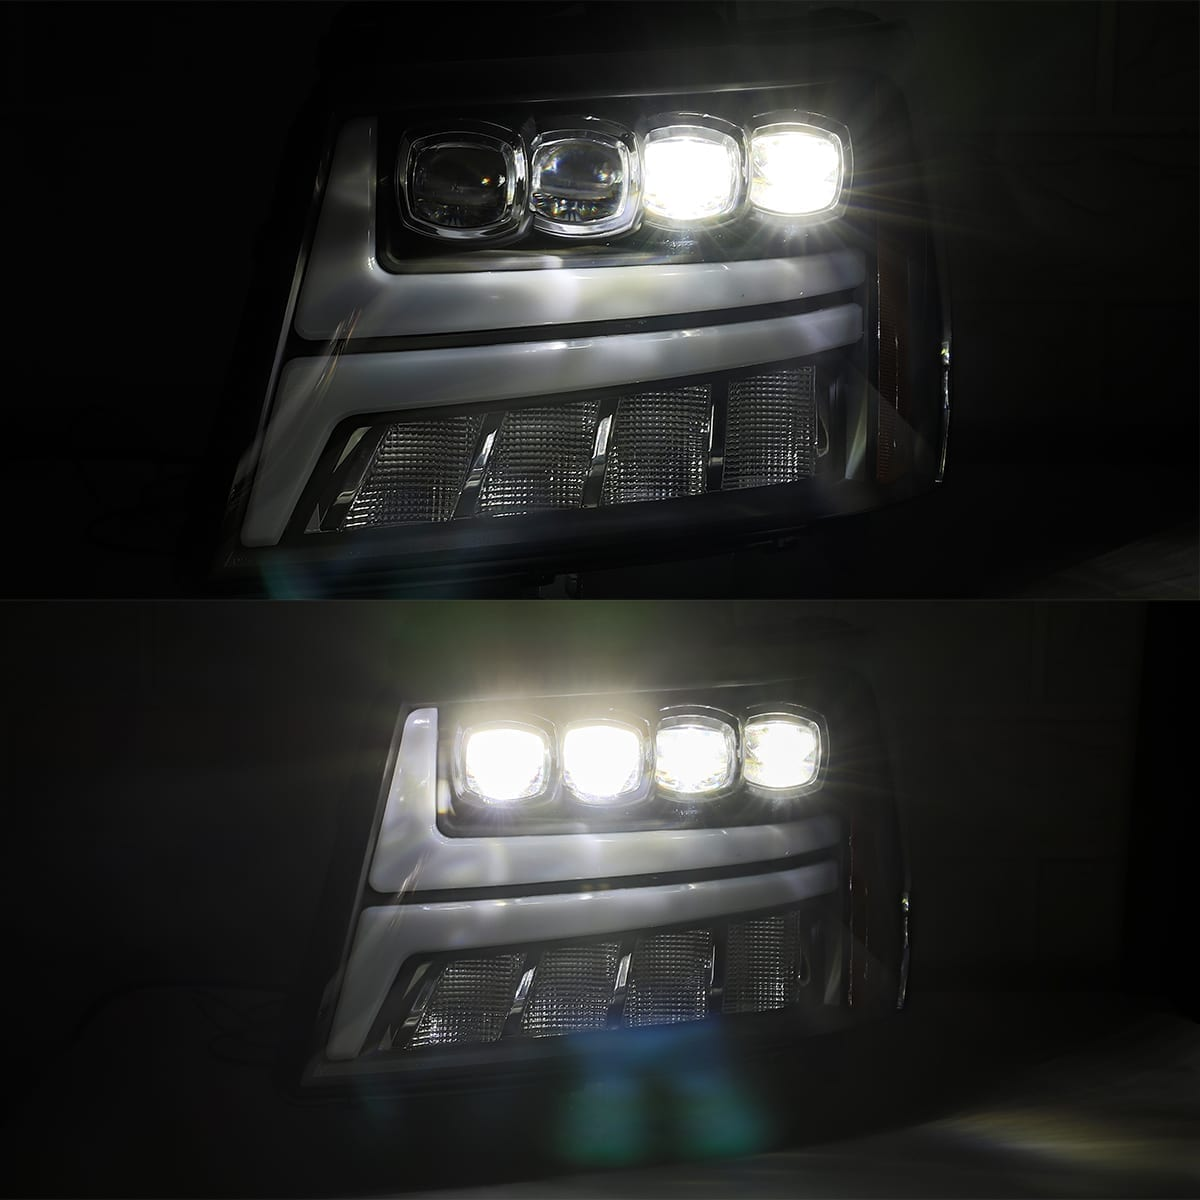 2007 2008 2009 2010 2011 2012 2013 Chevy Tahoe Suburban Avalanche NOVA-Series Full LED Projector Headlights Low Beam and High Beam